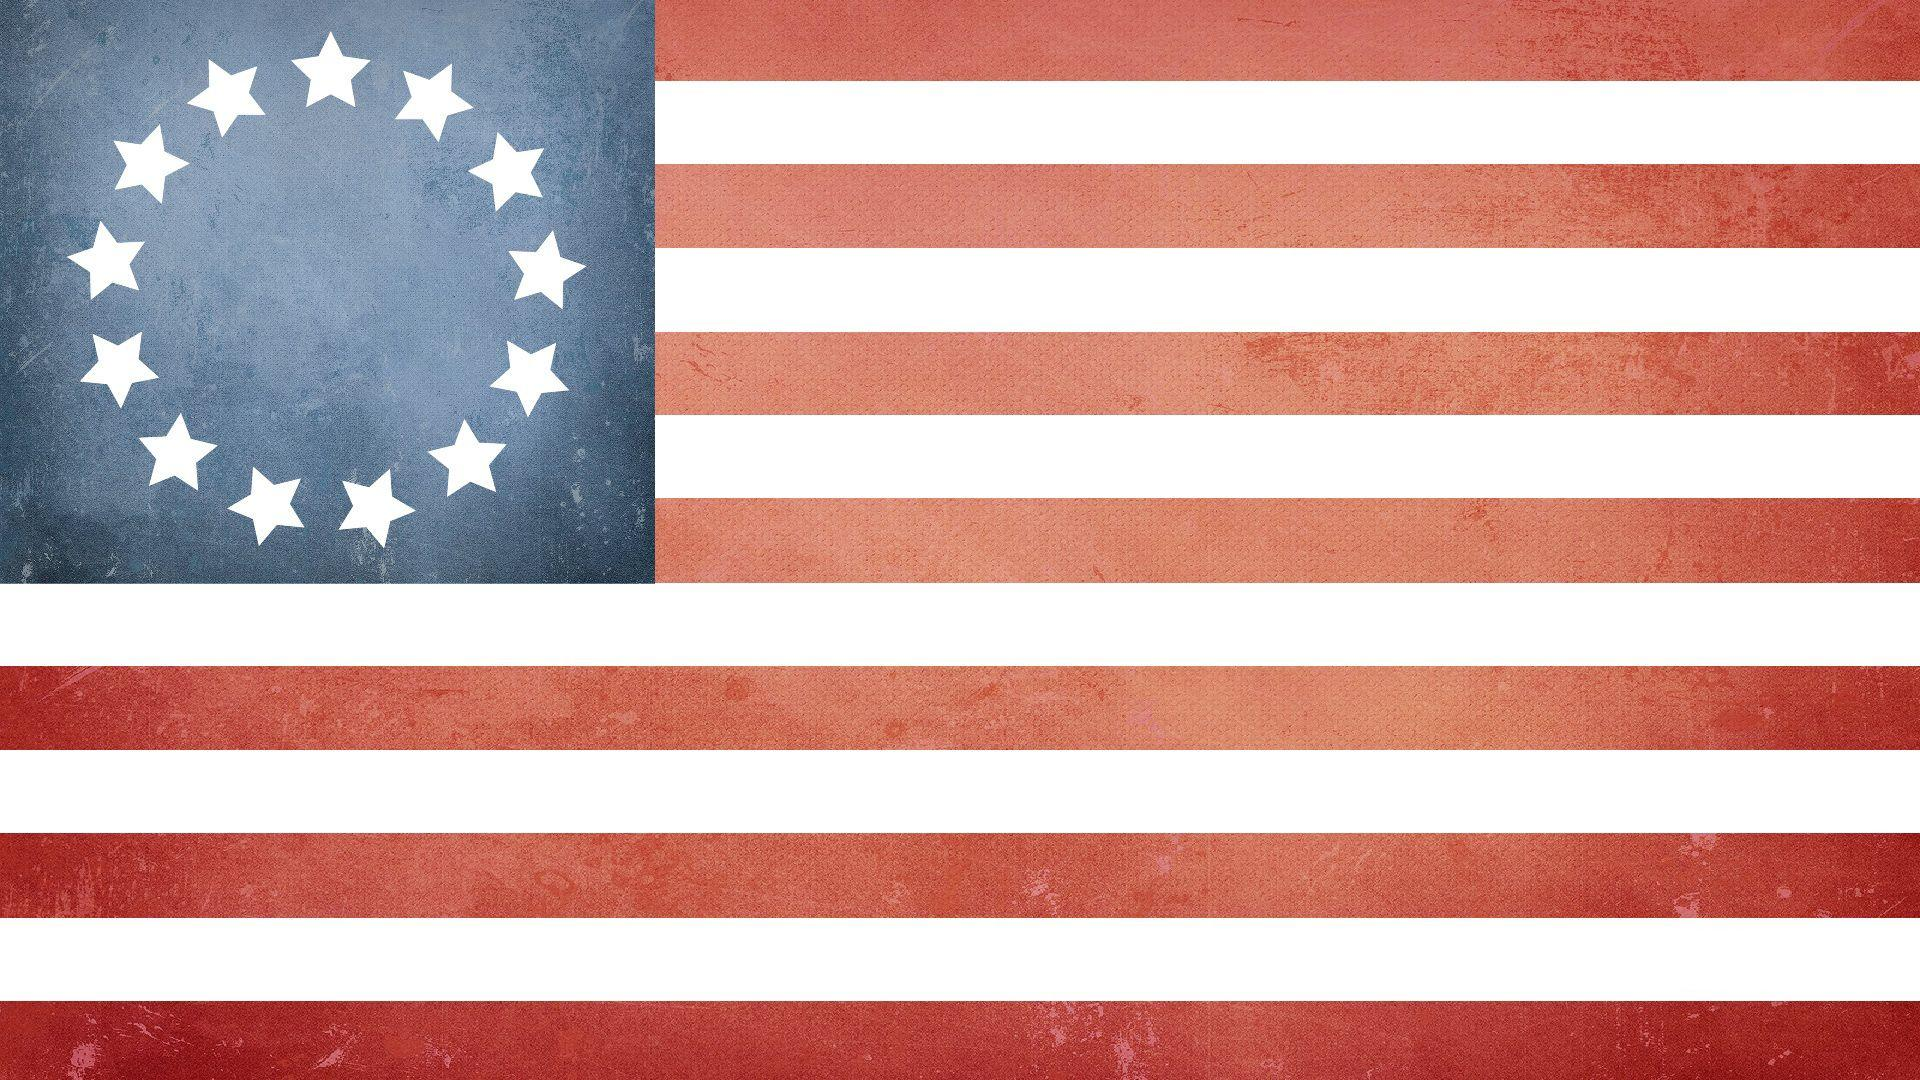 13 Star US Flag Wallpapers